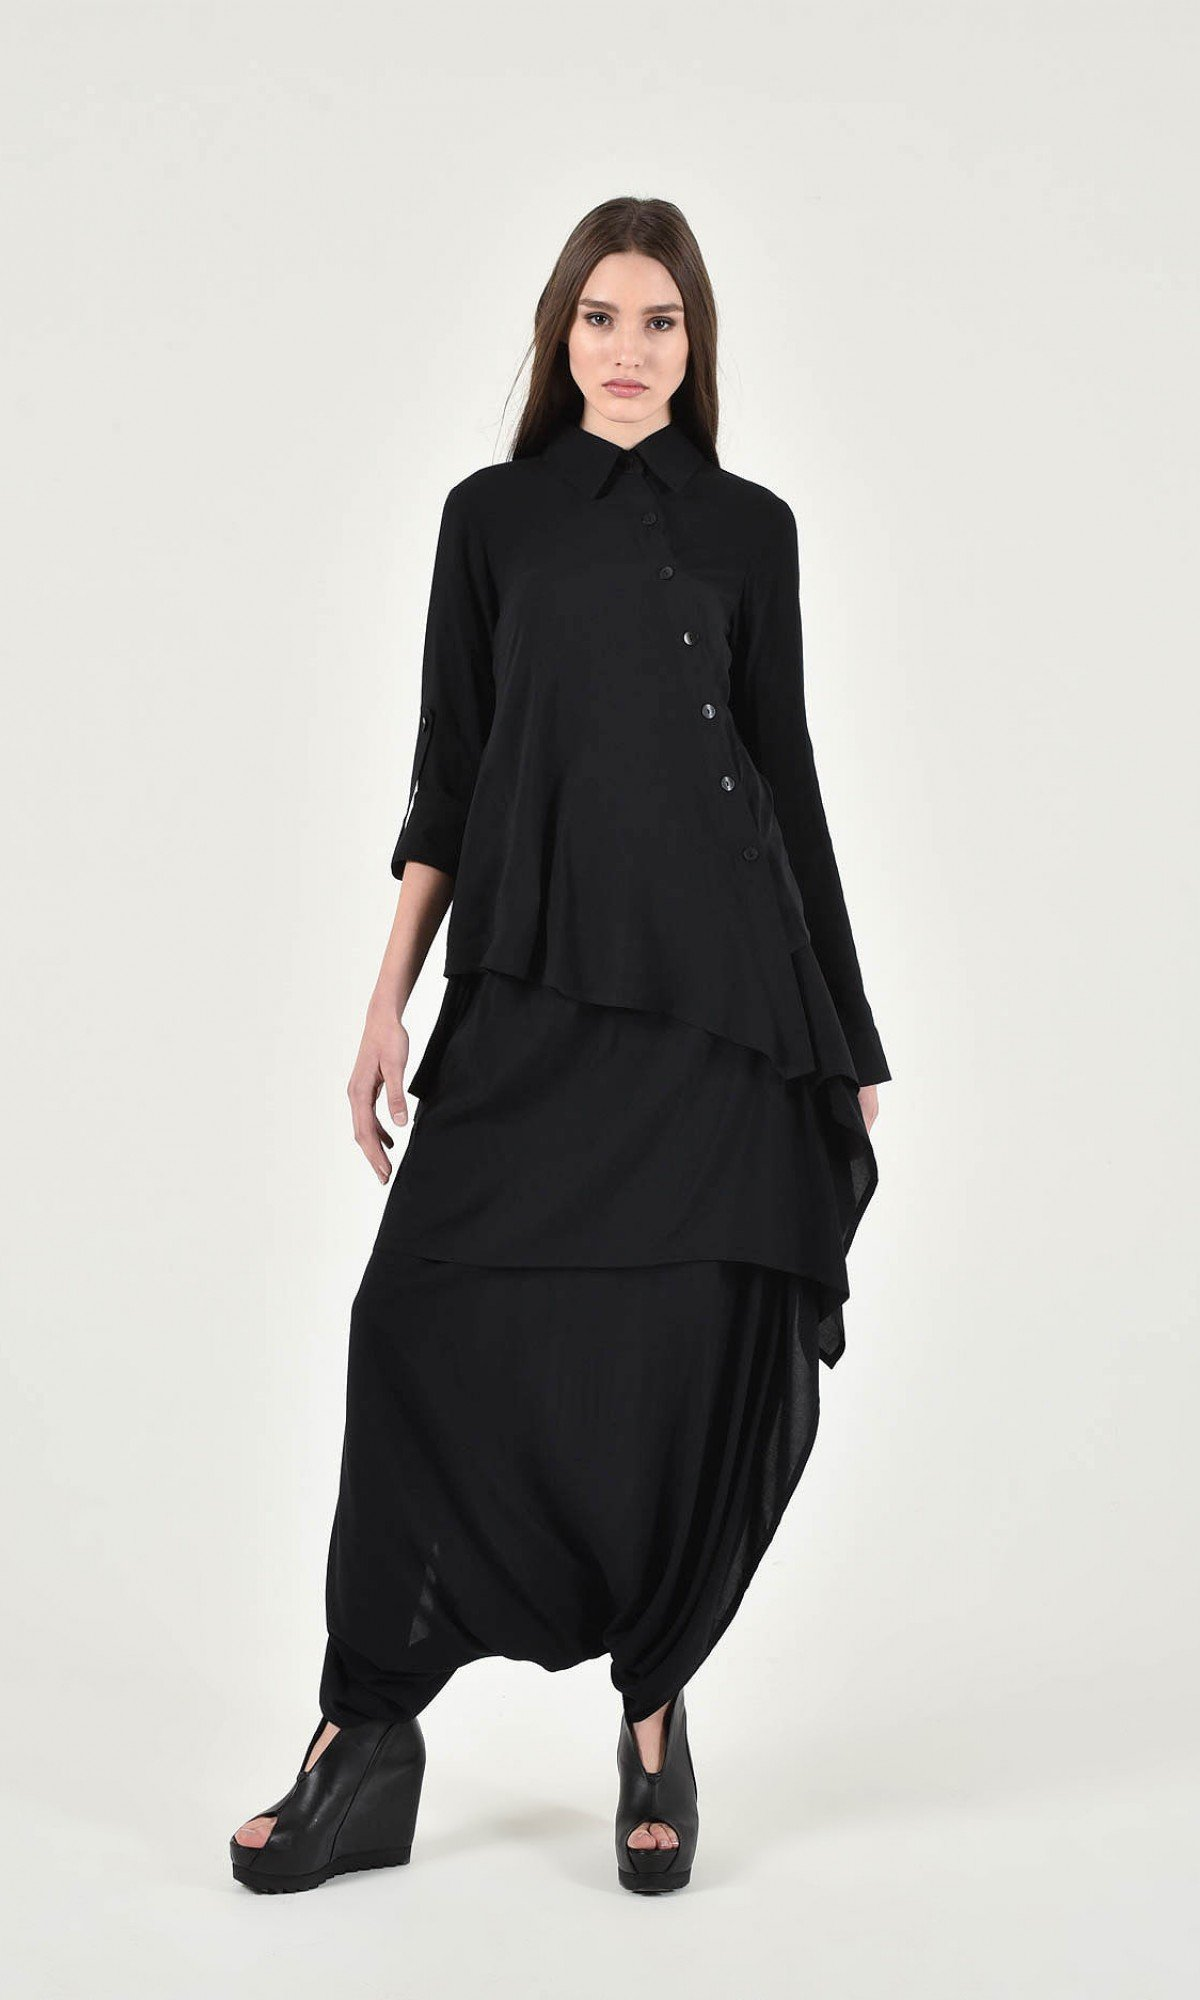 Asymmetric Buttoned Long Sleeve Shirt A11790